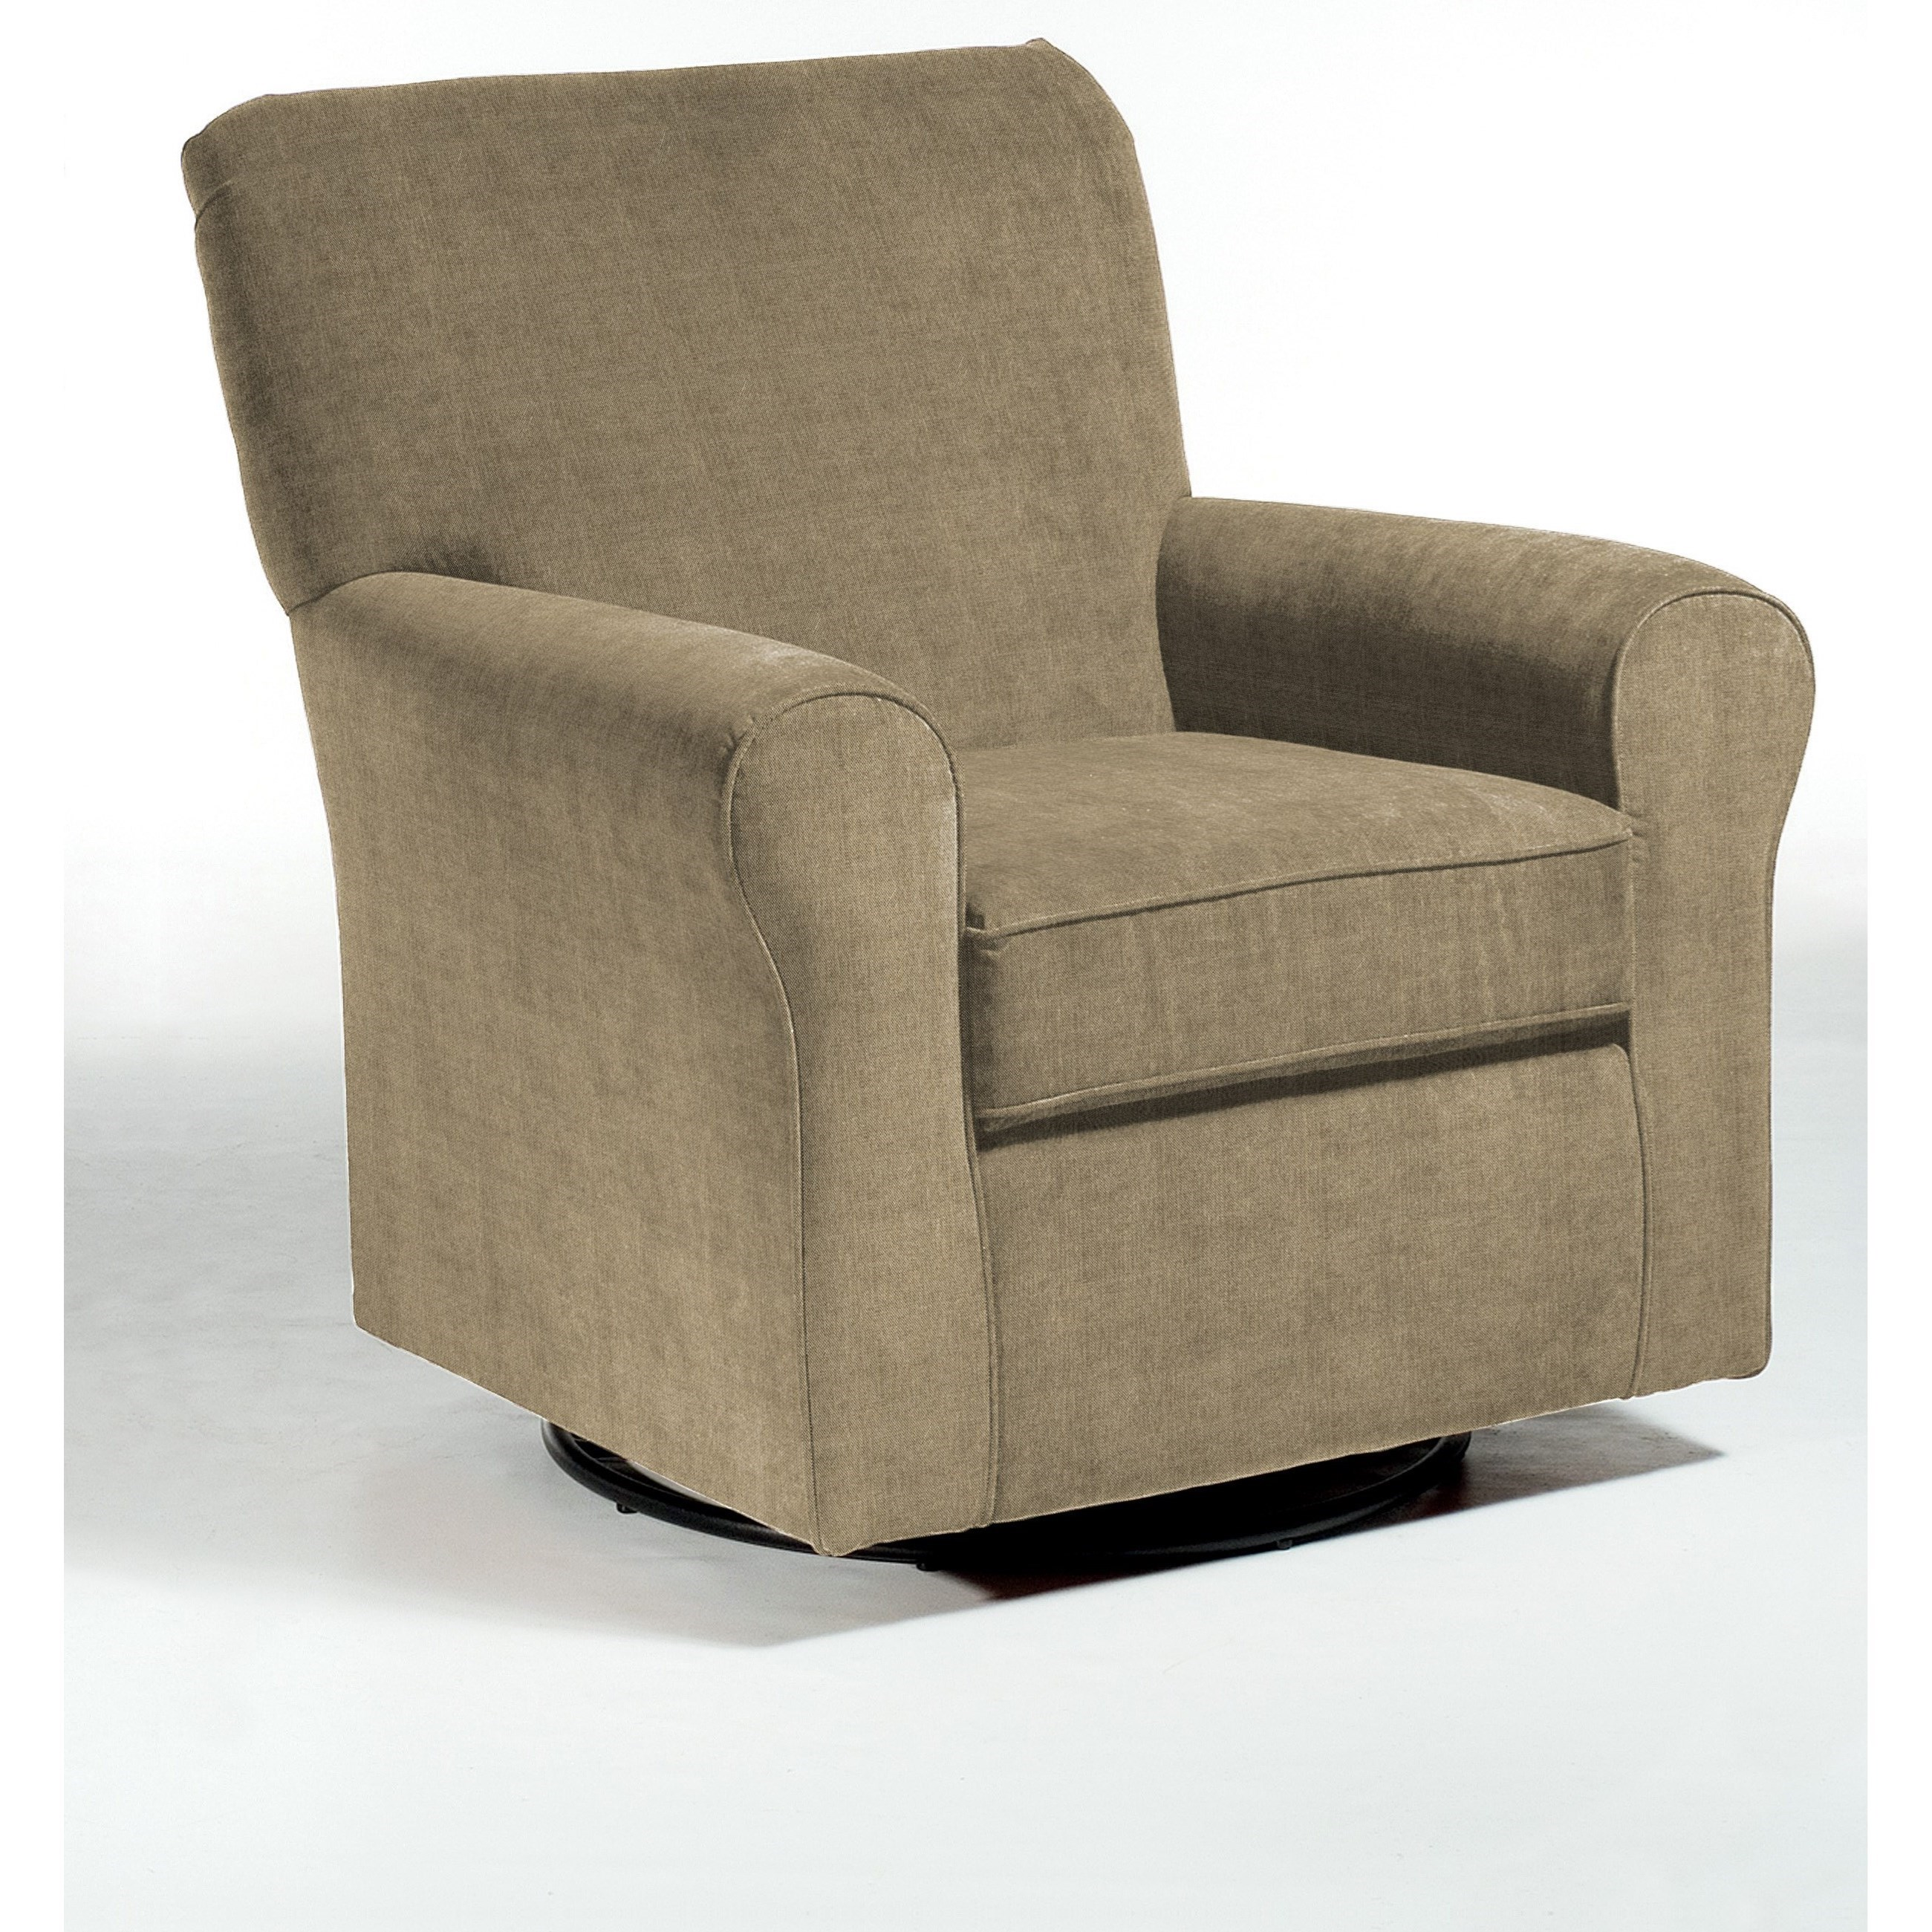 Swivel Glide Chairs Hagen Swivel Glide by Best Home Furnishings at Steger's Furniture